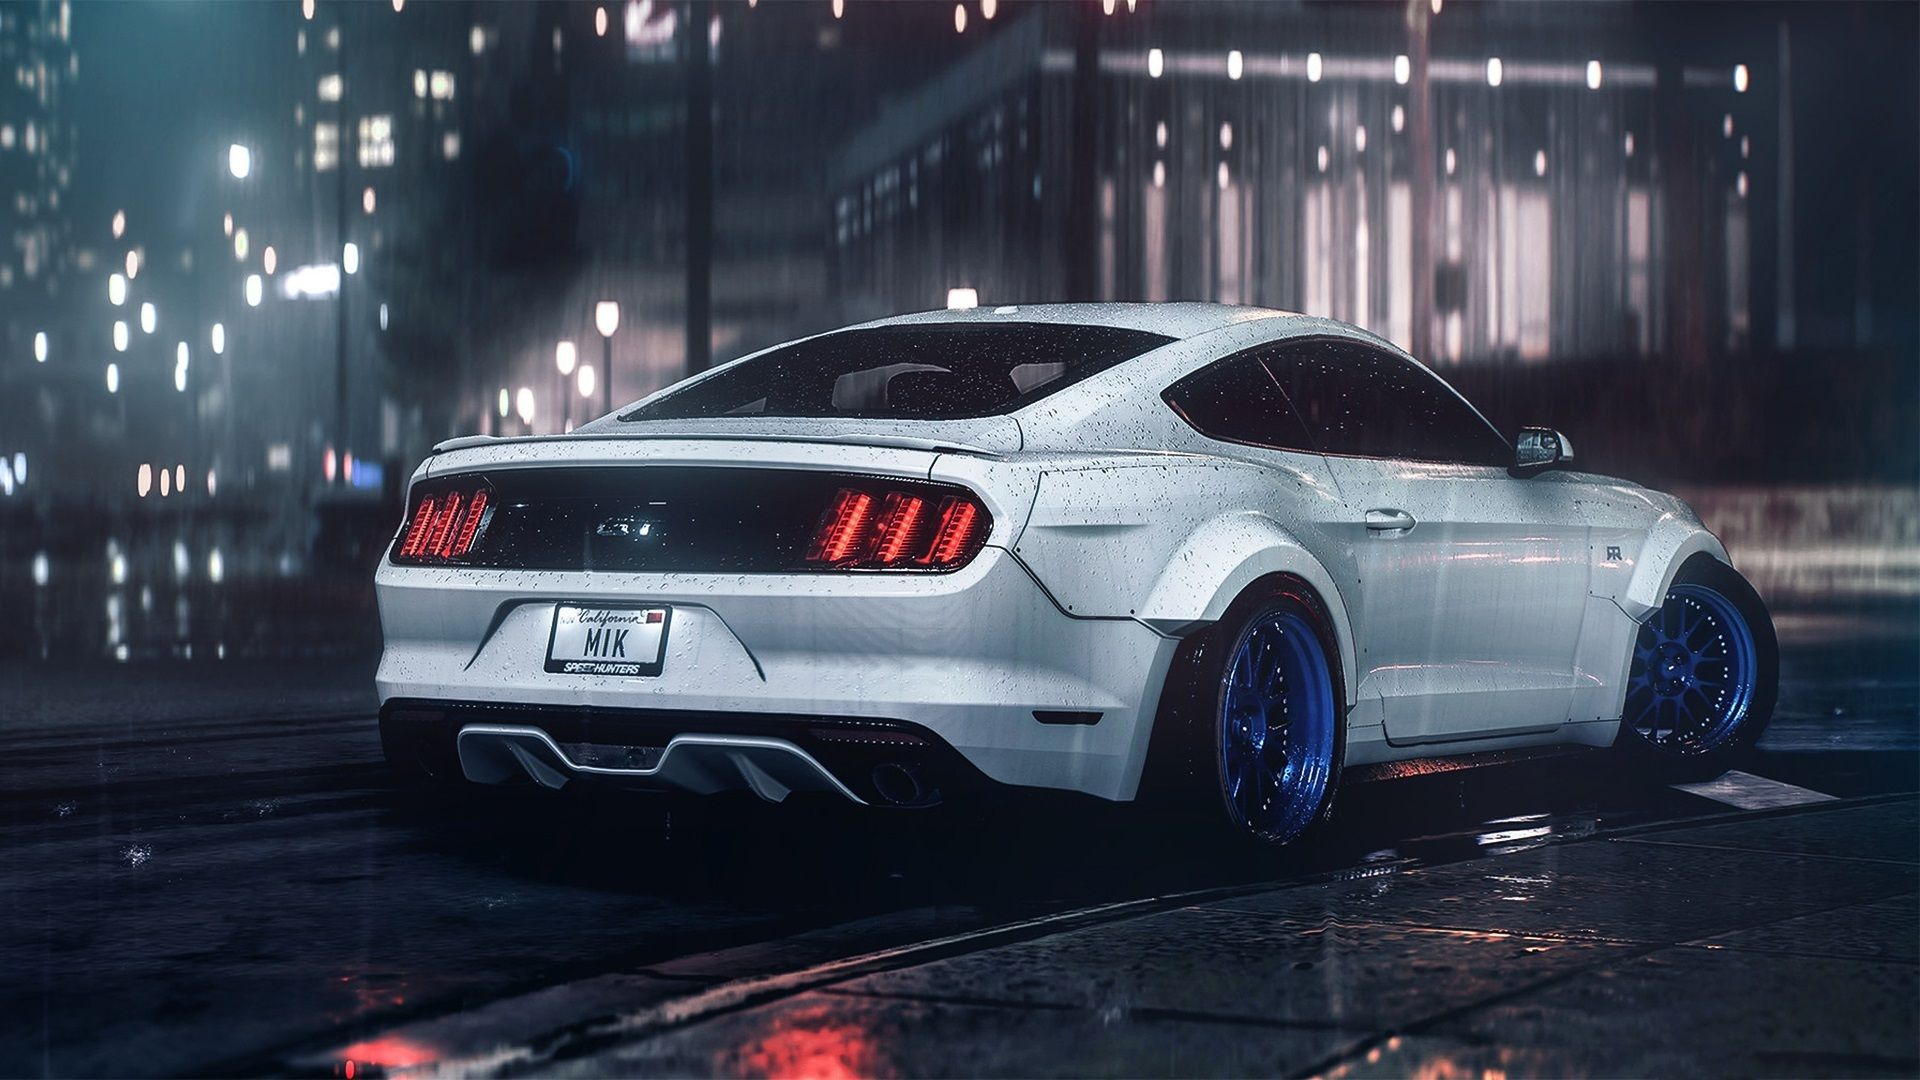 Pin By Download Wallpapers Hd Desktop On M U S T A N G Ford Mustang Wallpaper Mustang Wallpaper Ford Mustang Gt